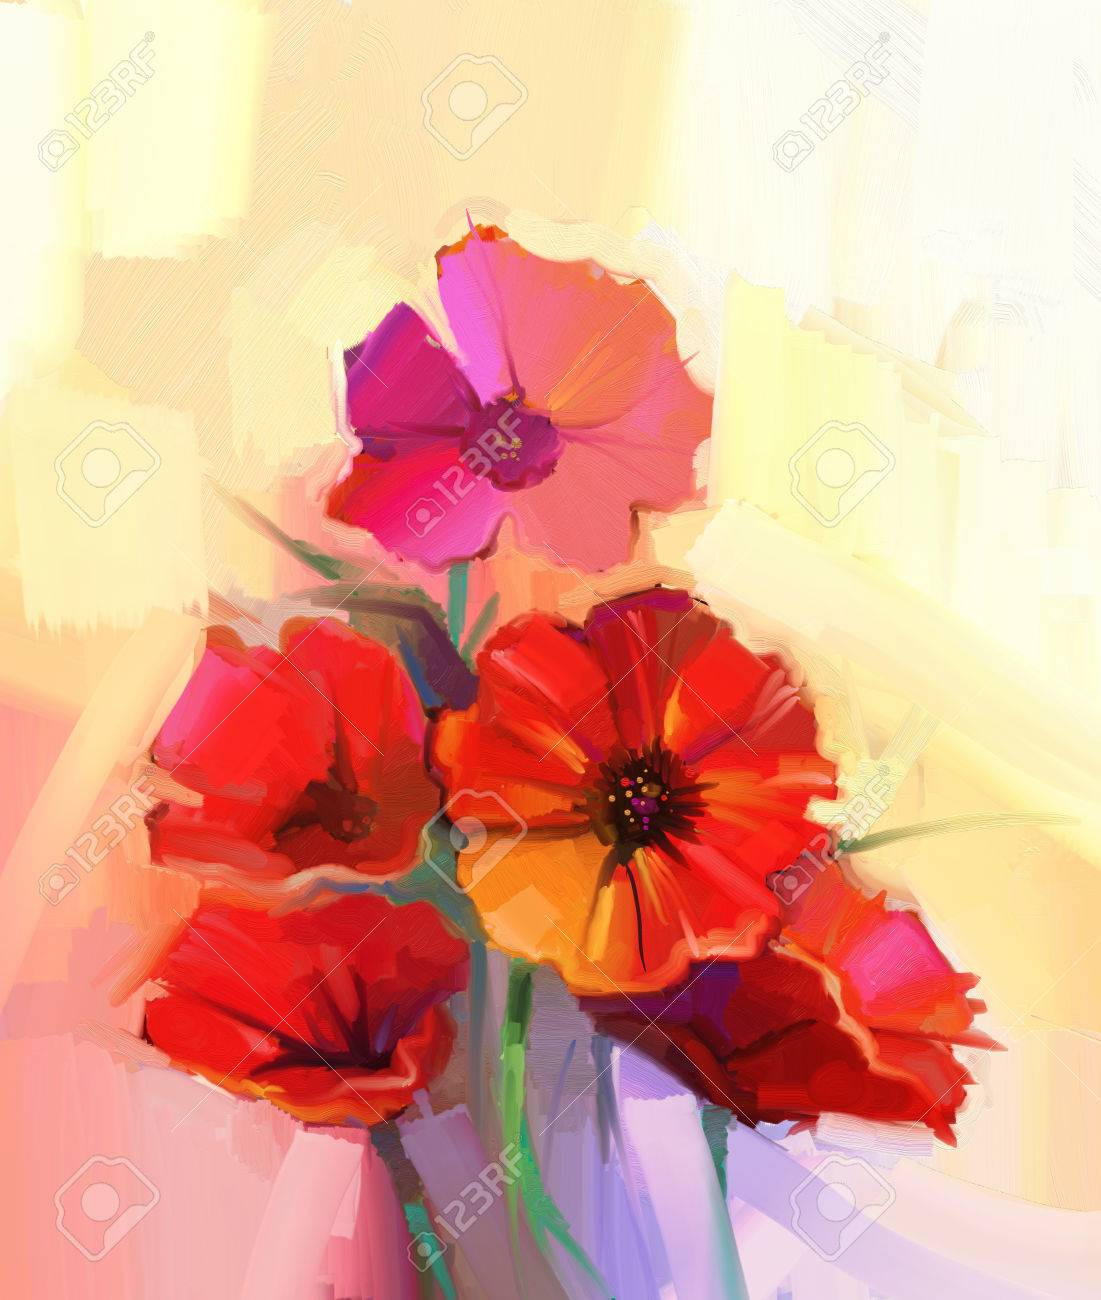 Oil painting red poppy flowers flower paint in soft color and oil painting red poppy flowers flower paint in soft color and blur style soft mightylinksfo